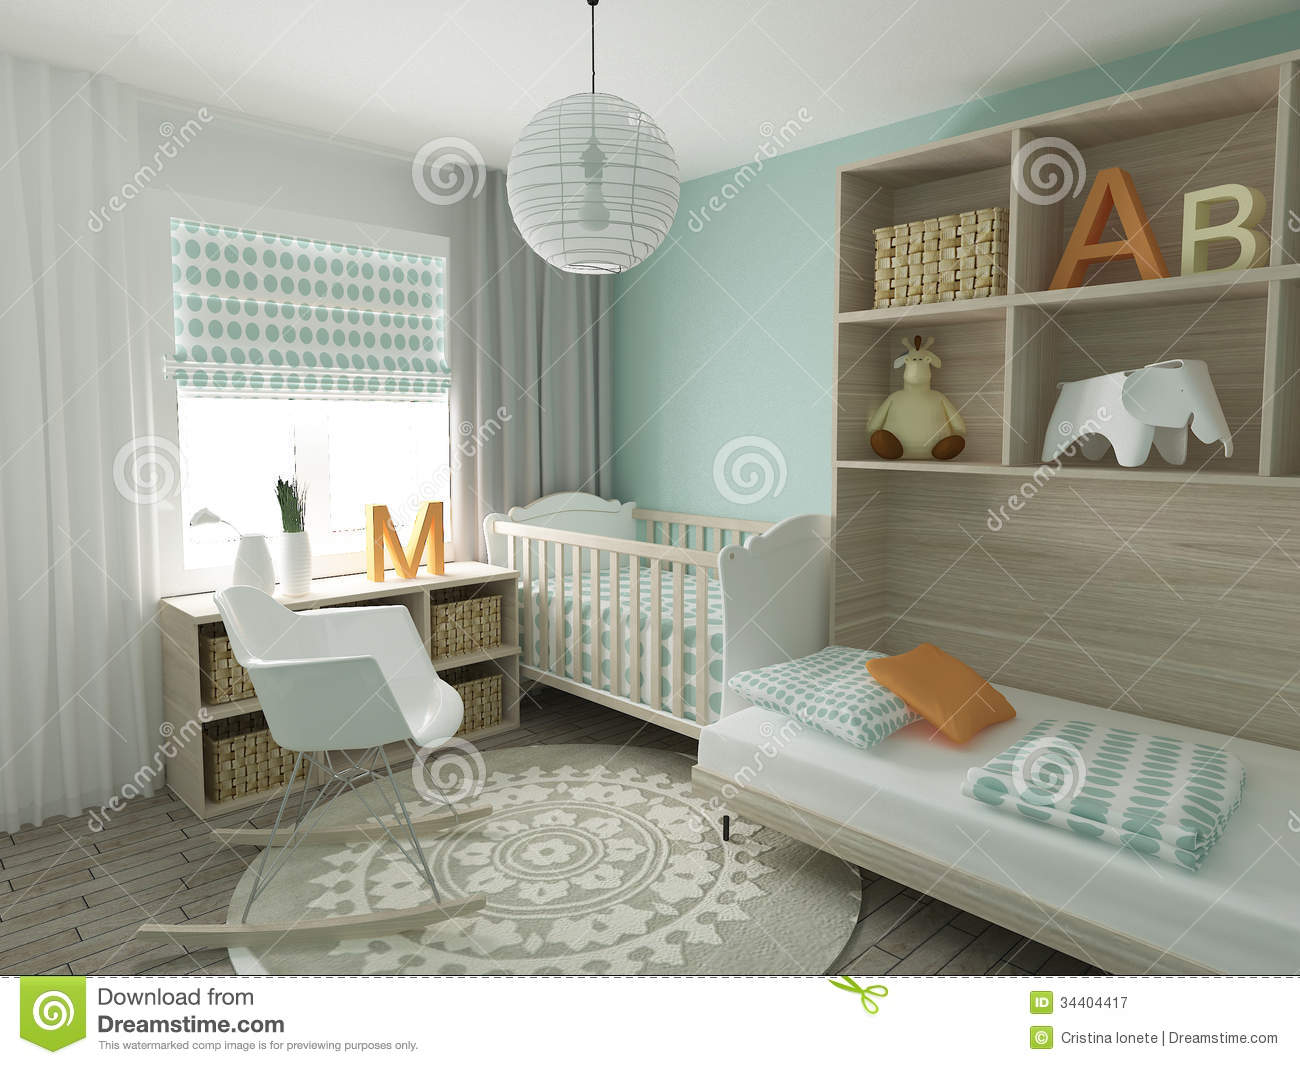 Nursery interior royalty free stock photography image 34404417 Master bedroom plus nursery